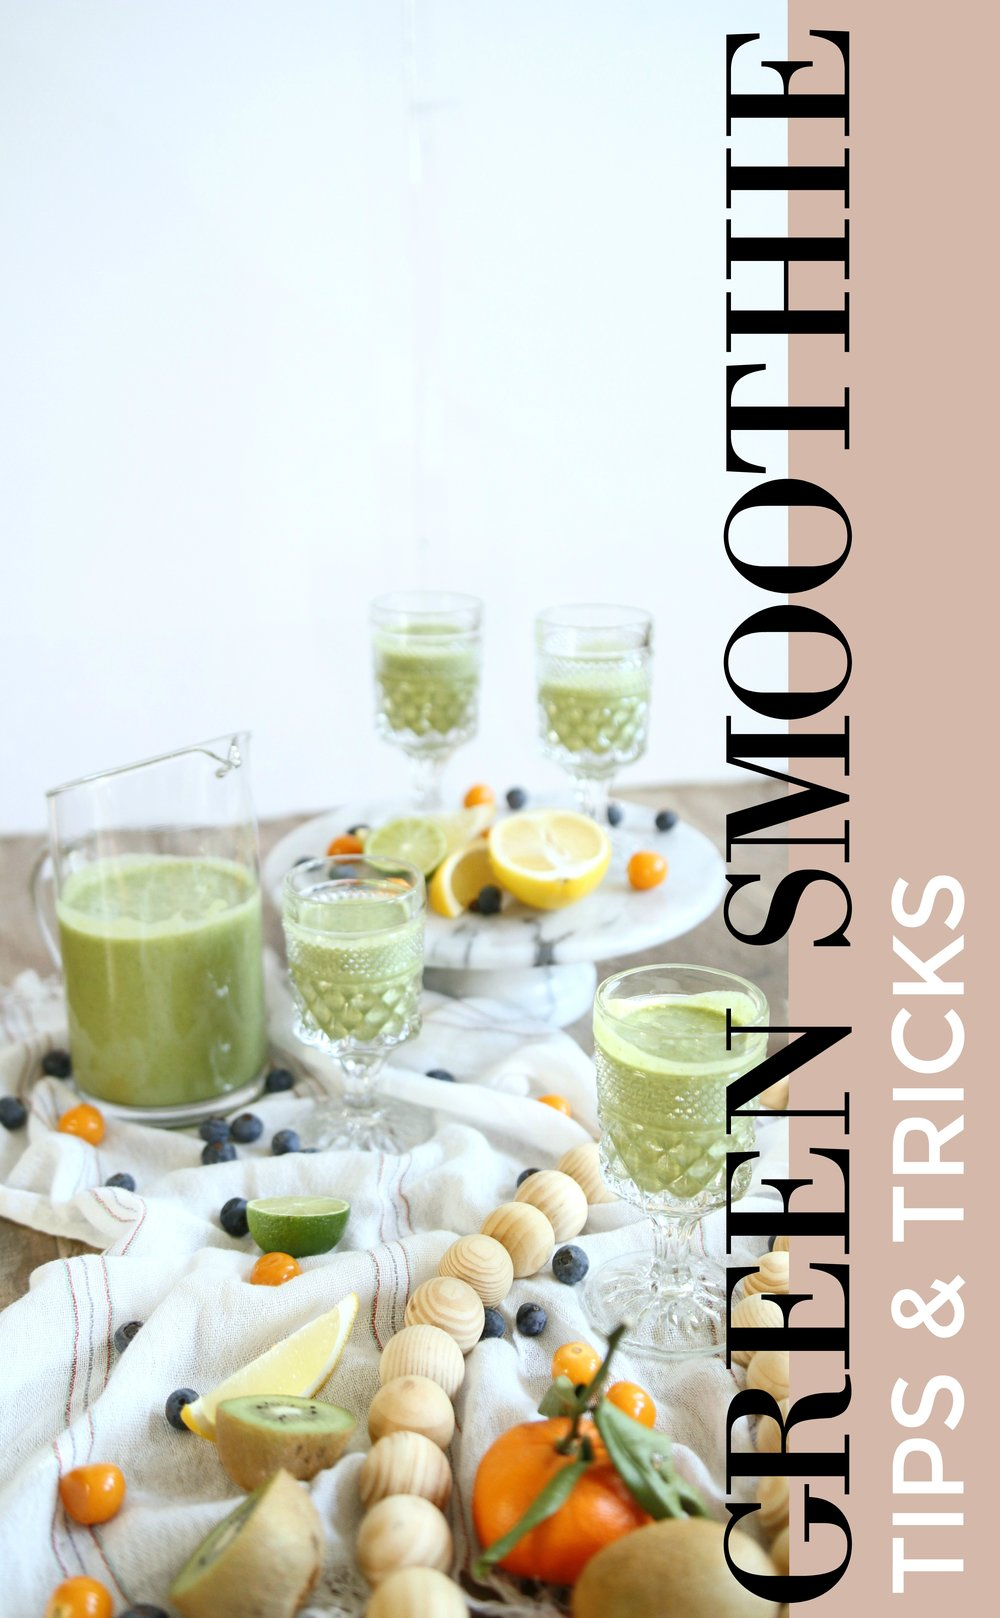 Green Smoothie tips and tricks! Finding ways to get your daily greens can be so hard! This simple trick can make green smoothies healthier, faster and even tastier!